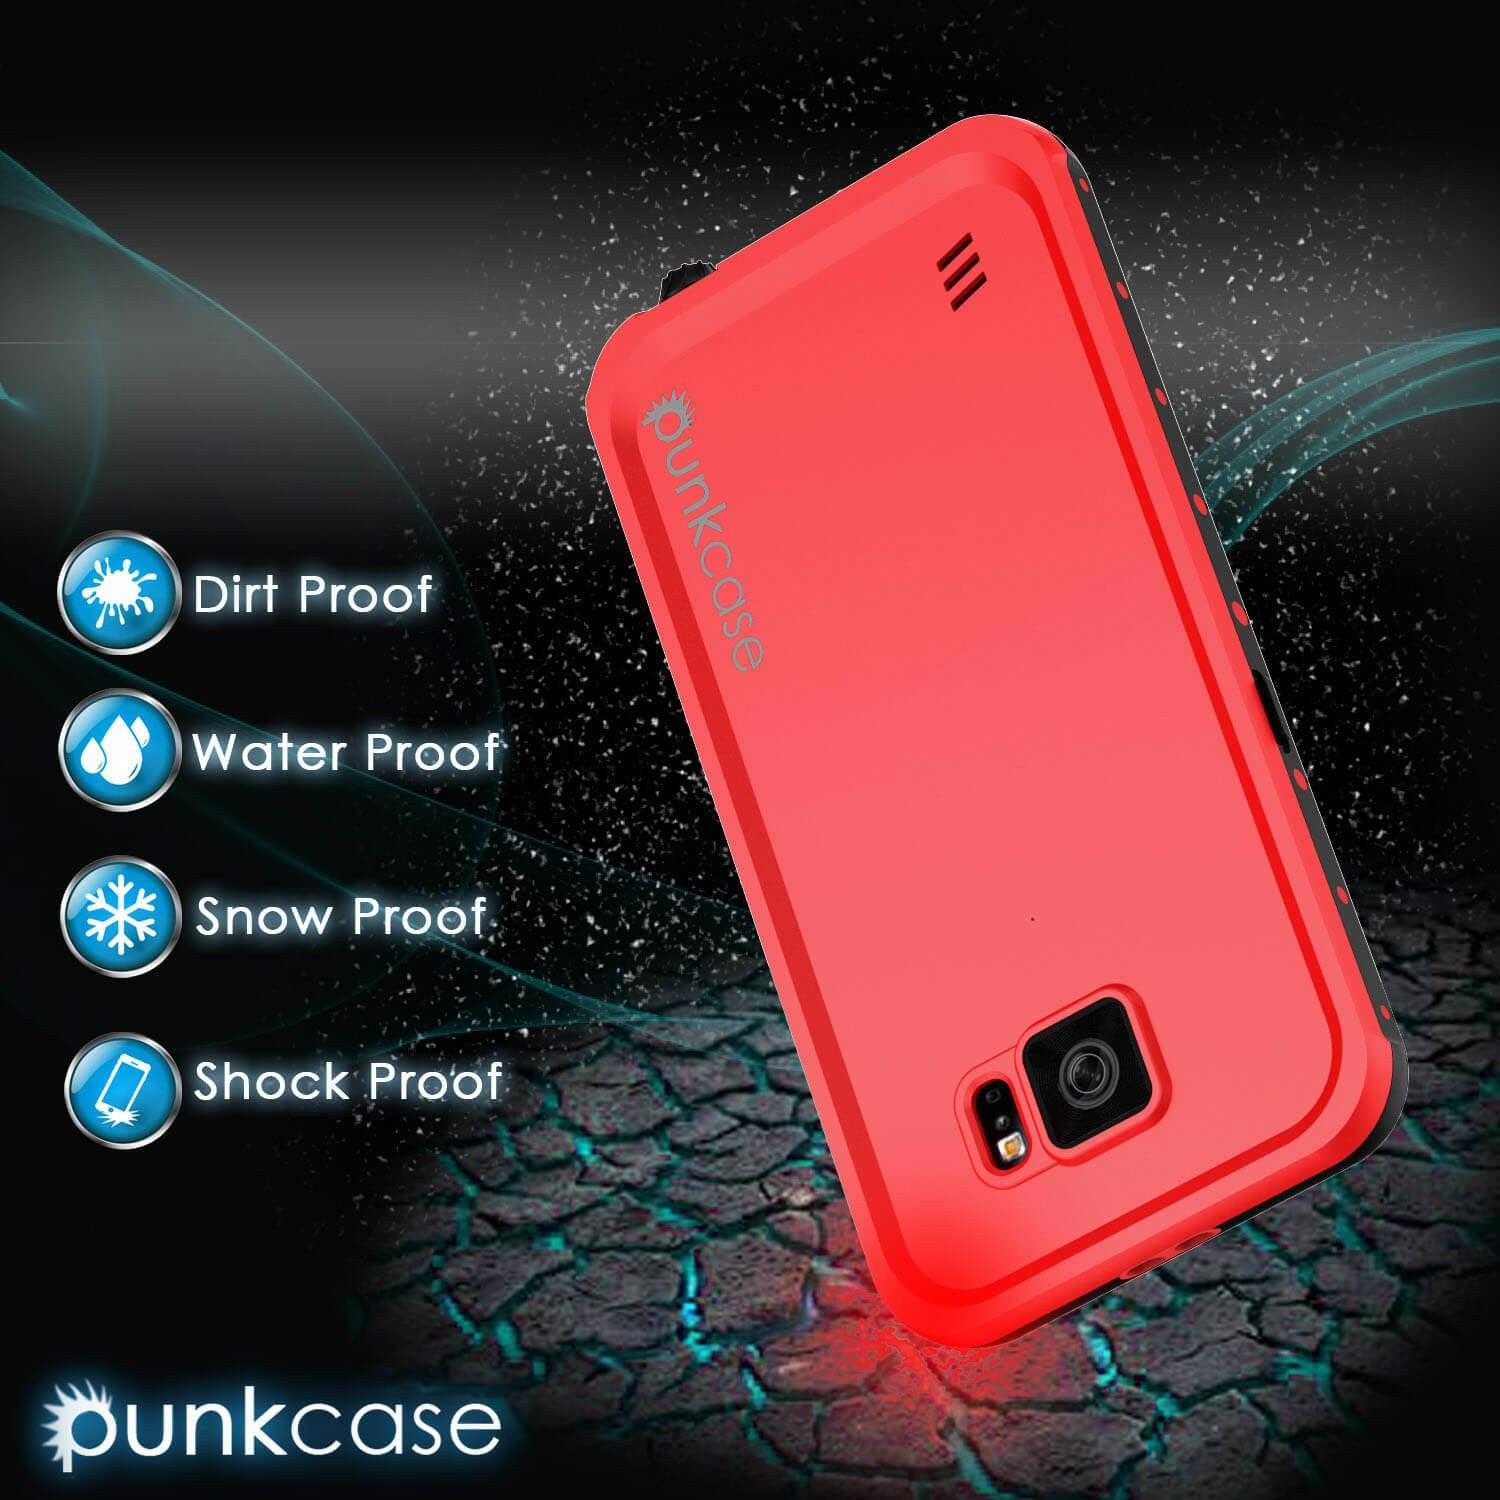 Galaxy S6 Waterproof Case PunkCase StudStar Red Thin 6.6ft Underwater IP68 Shock/Dirt/Snow Proof - PunkCase NZ